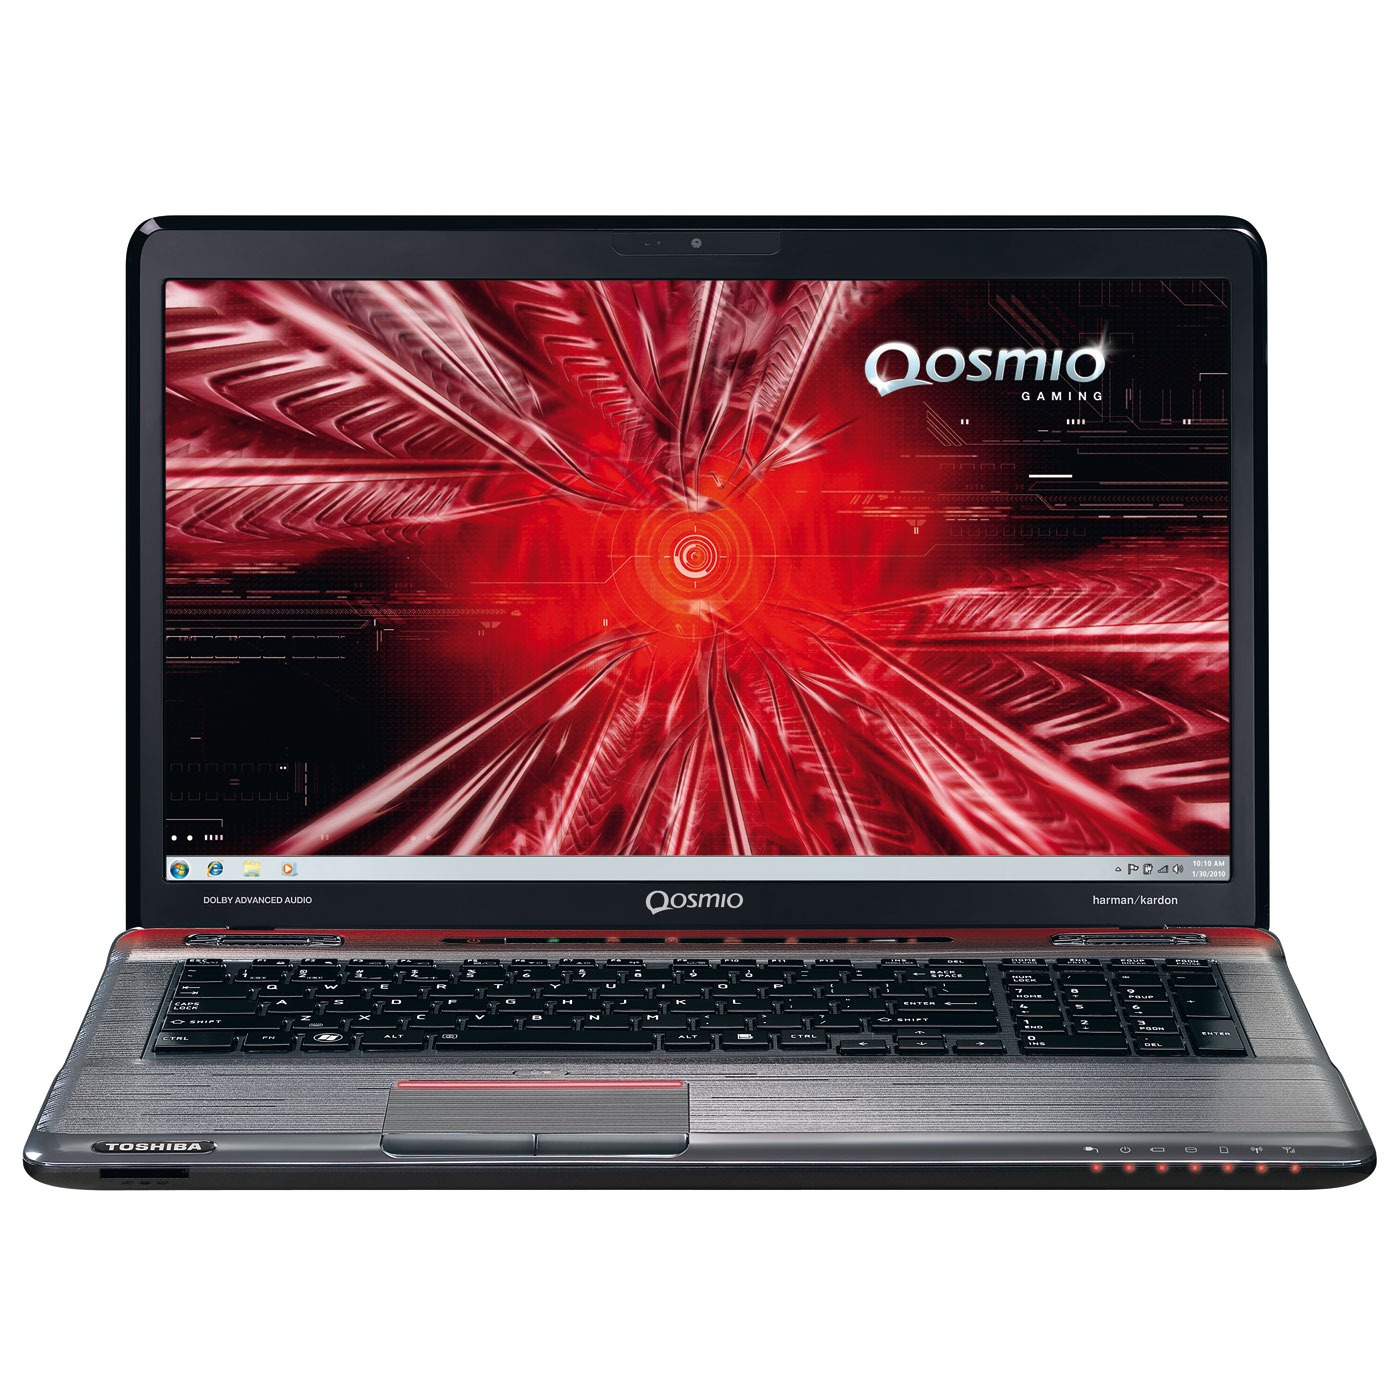 "PC portable Toshiba Qosmio X770-127 Intel Core i7-2670QM 4 Go 1 To (2x 500 Go) 17.3"" LED NVIDIA GeForce GTX 560M Lecteur Blu-ray/Graveur DVD Wi-Fi N/Bluetooth Webcam Windows 7 Premium 64 bits"